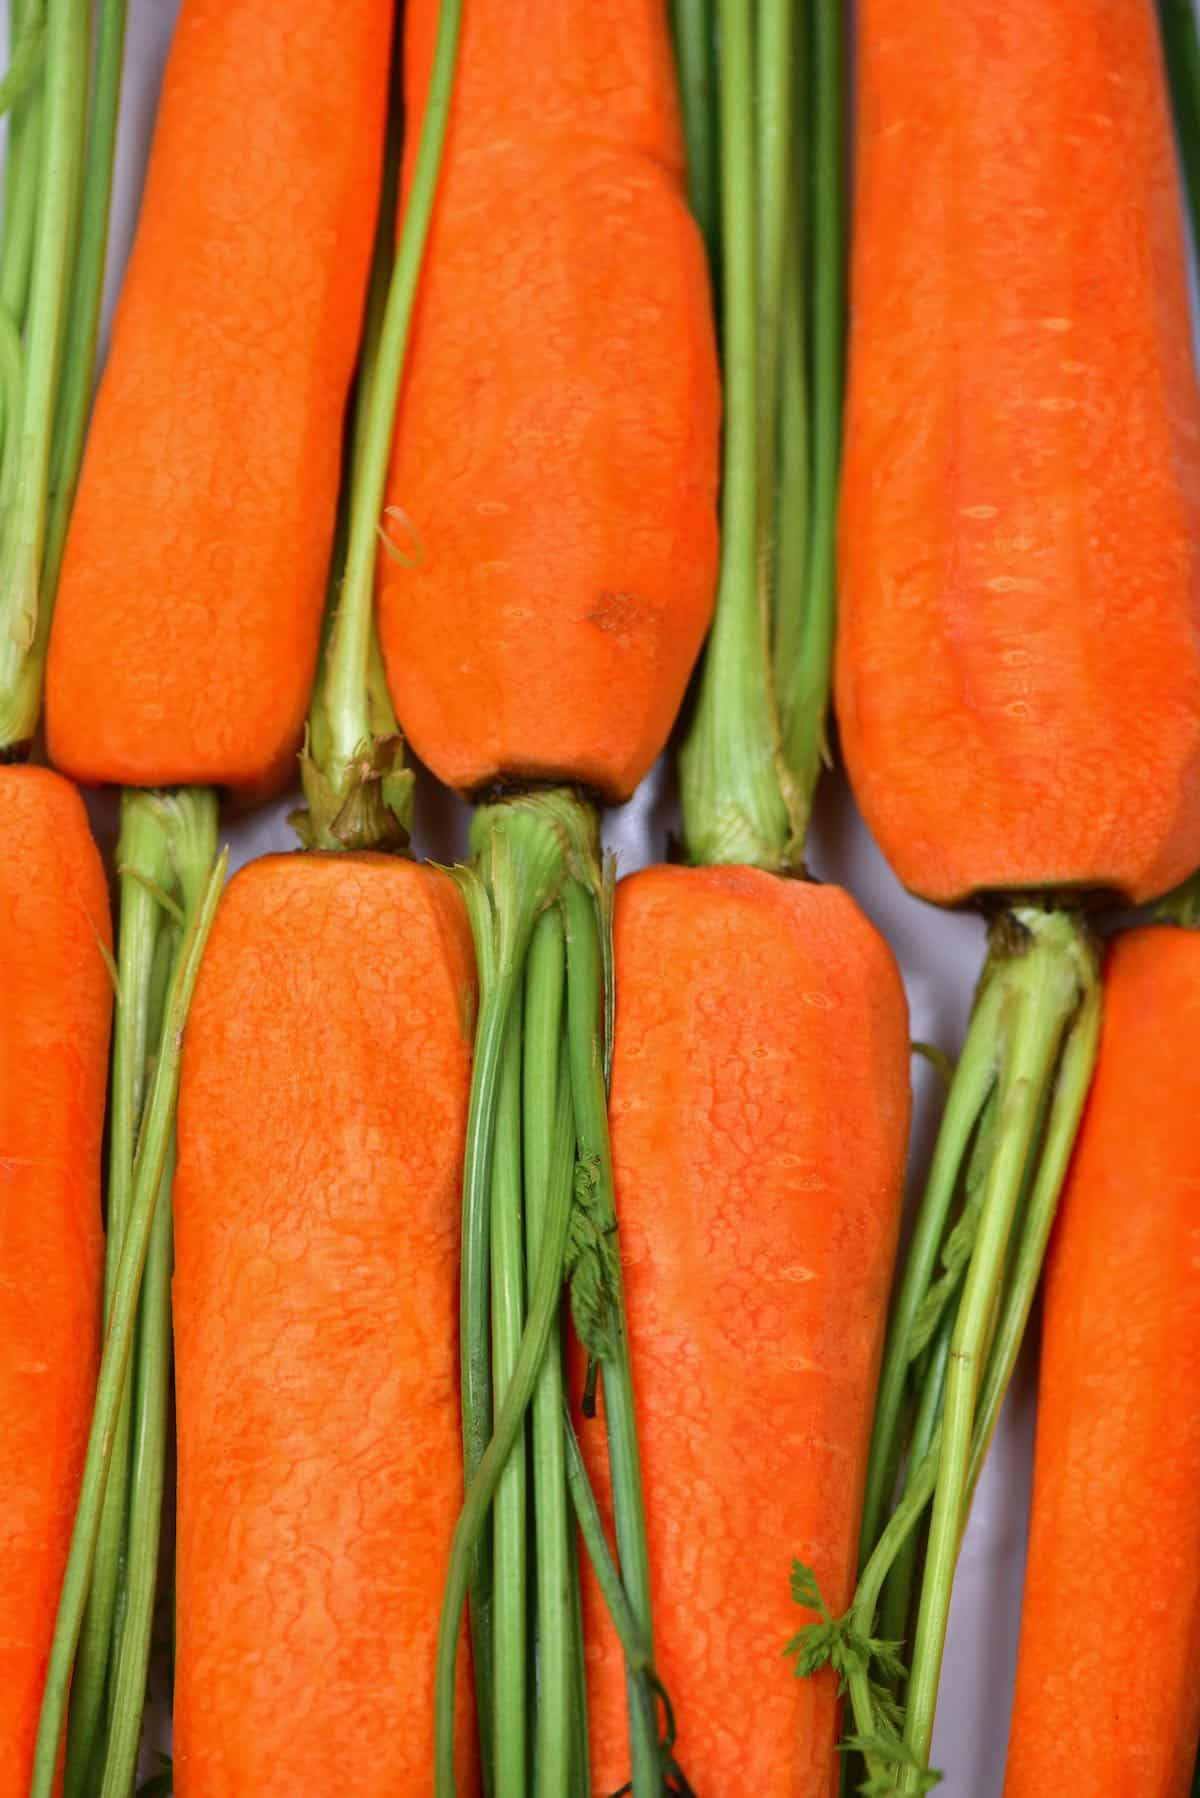 Carrots on a flat surface